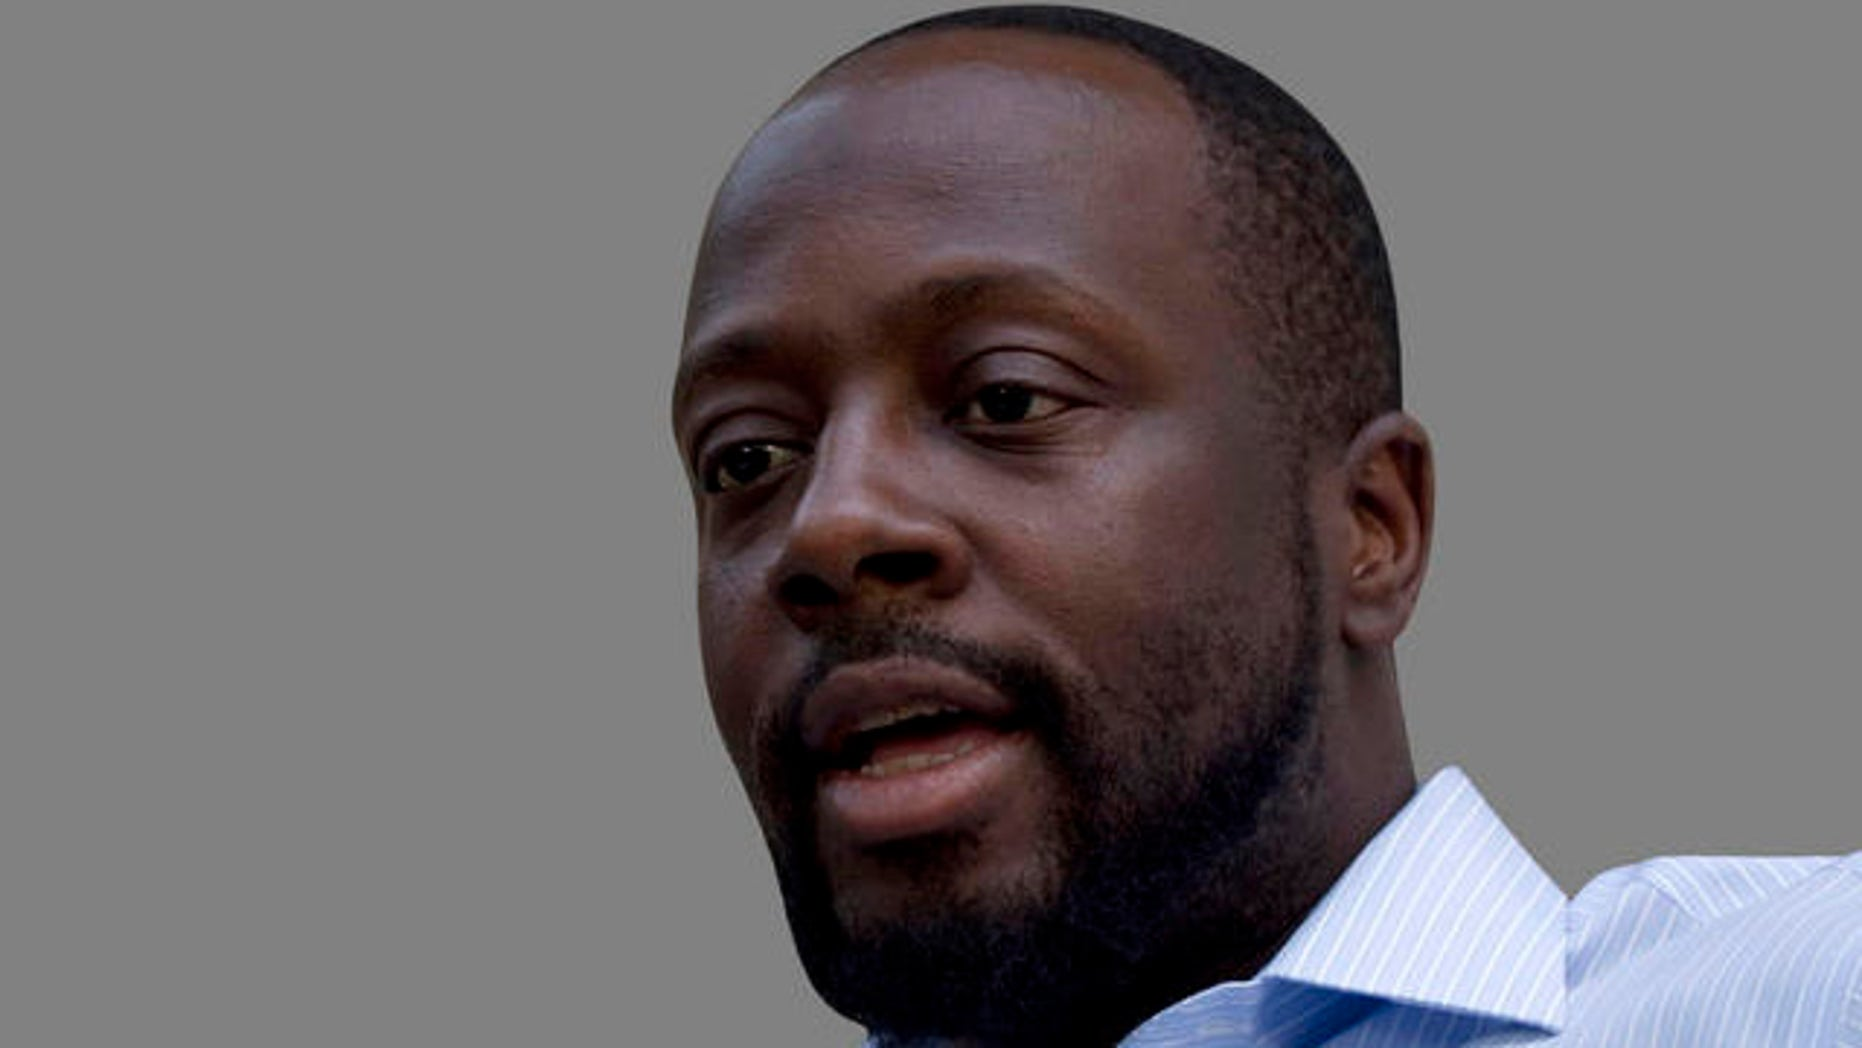 Haiti's presidential candidate and hip hop singer Wyclef Jean, center, speaks during an interview with The Associated Press in Croix de Bouquets, Haiti, Wednesday, Aug. 18, 2010. Jean says he has received death threats, which is why he is in seclusion until the electoral list is released. (AP Photo/Ramon Espinosa)